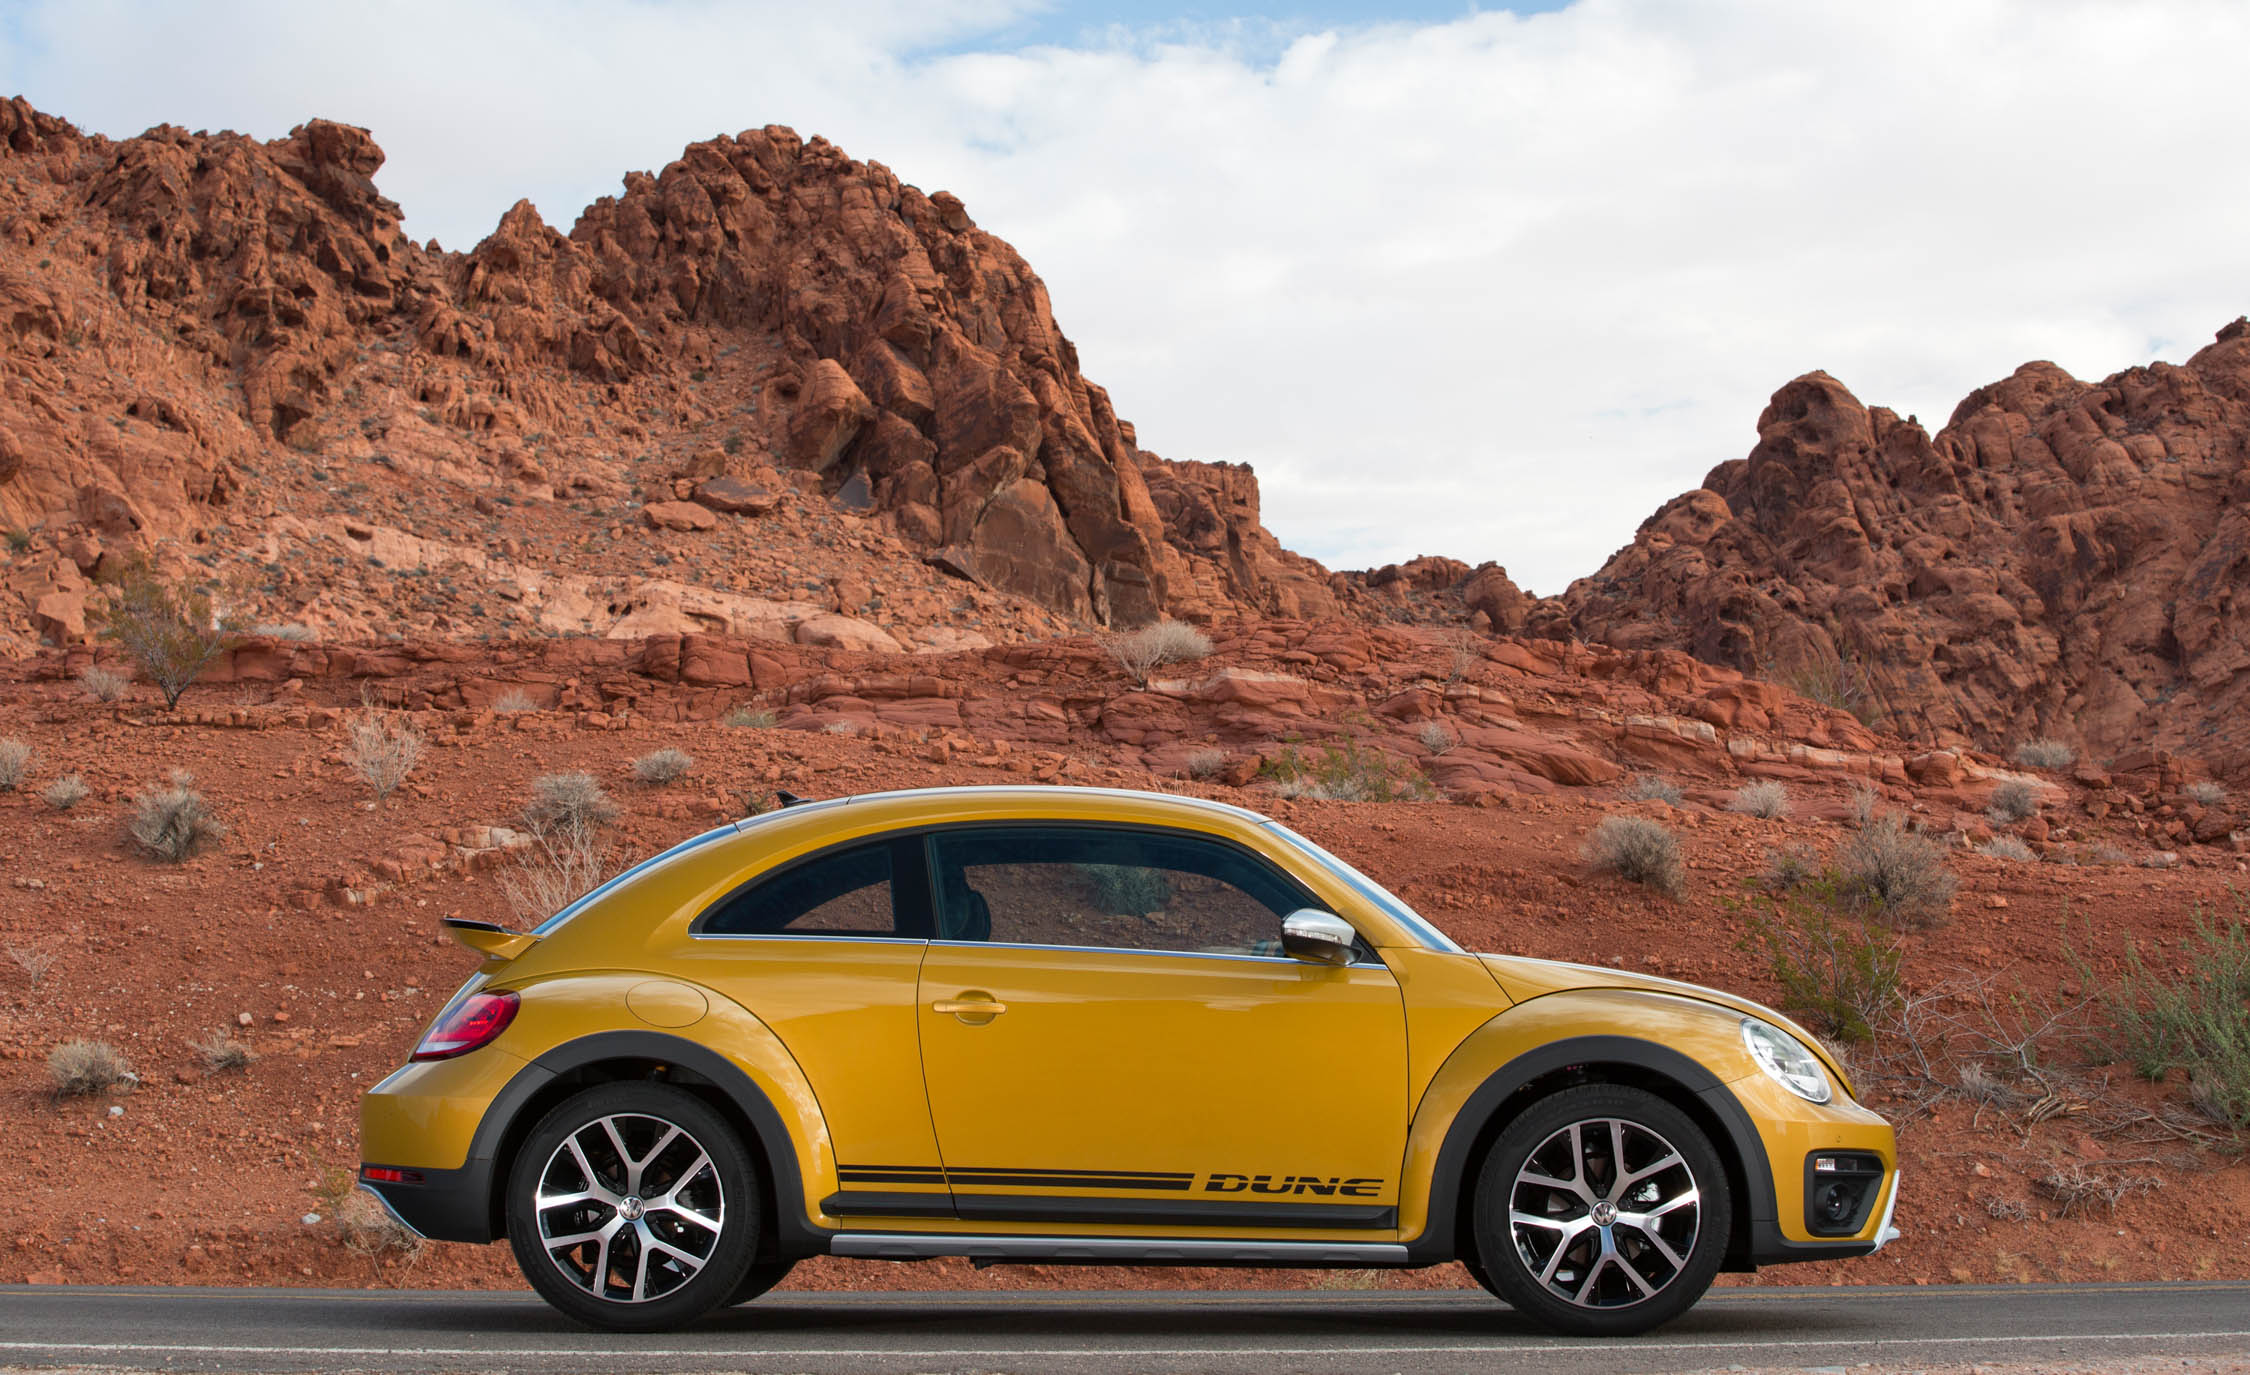 2016 Volkswagen Beetle Dune Coupe Exterior Full Side (Photo 14 of 32)